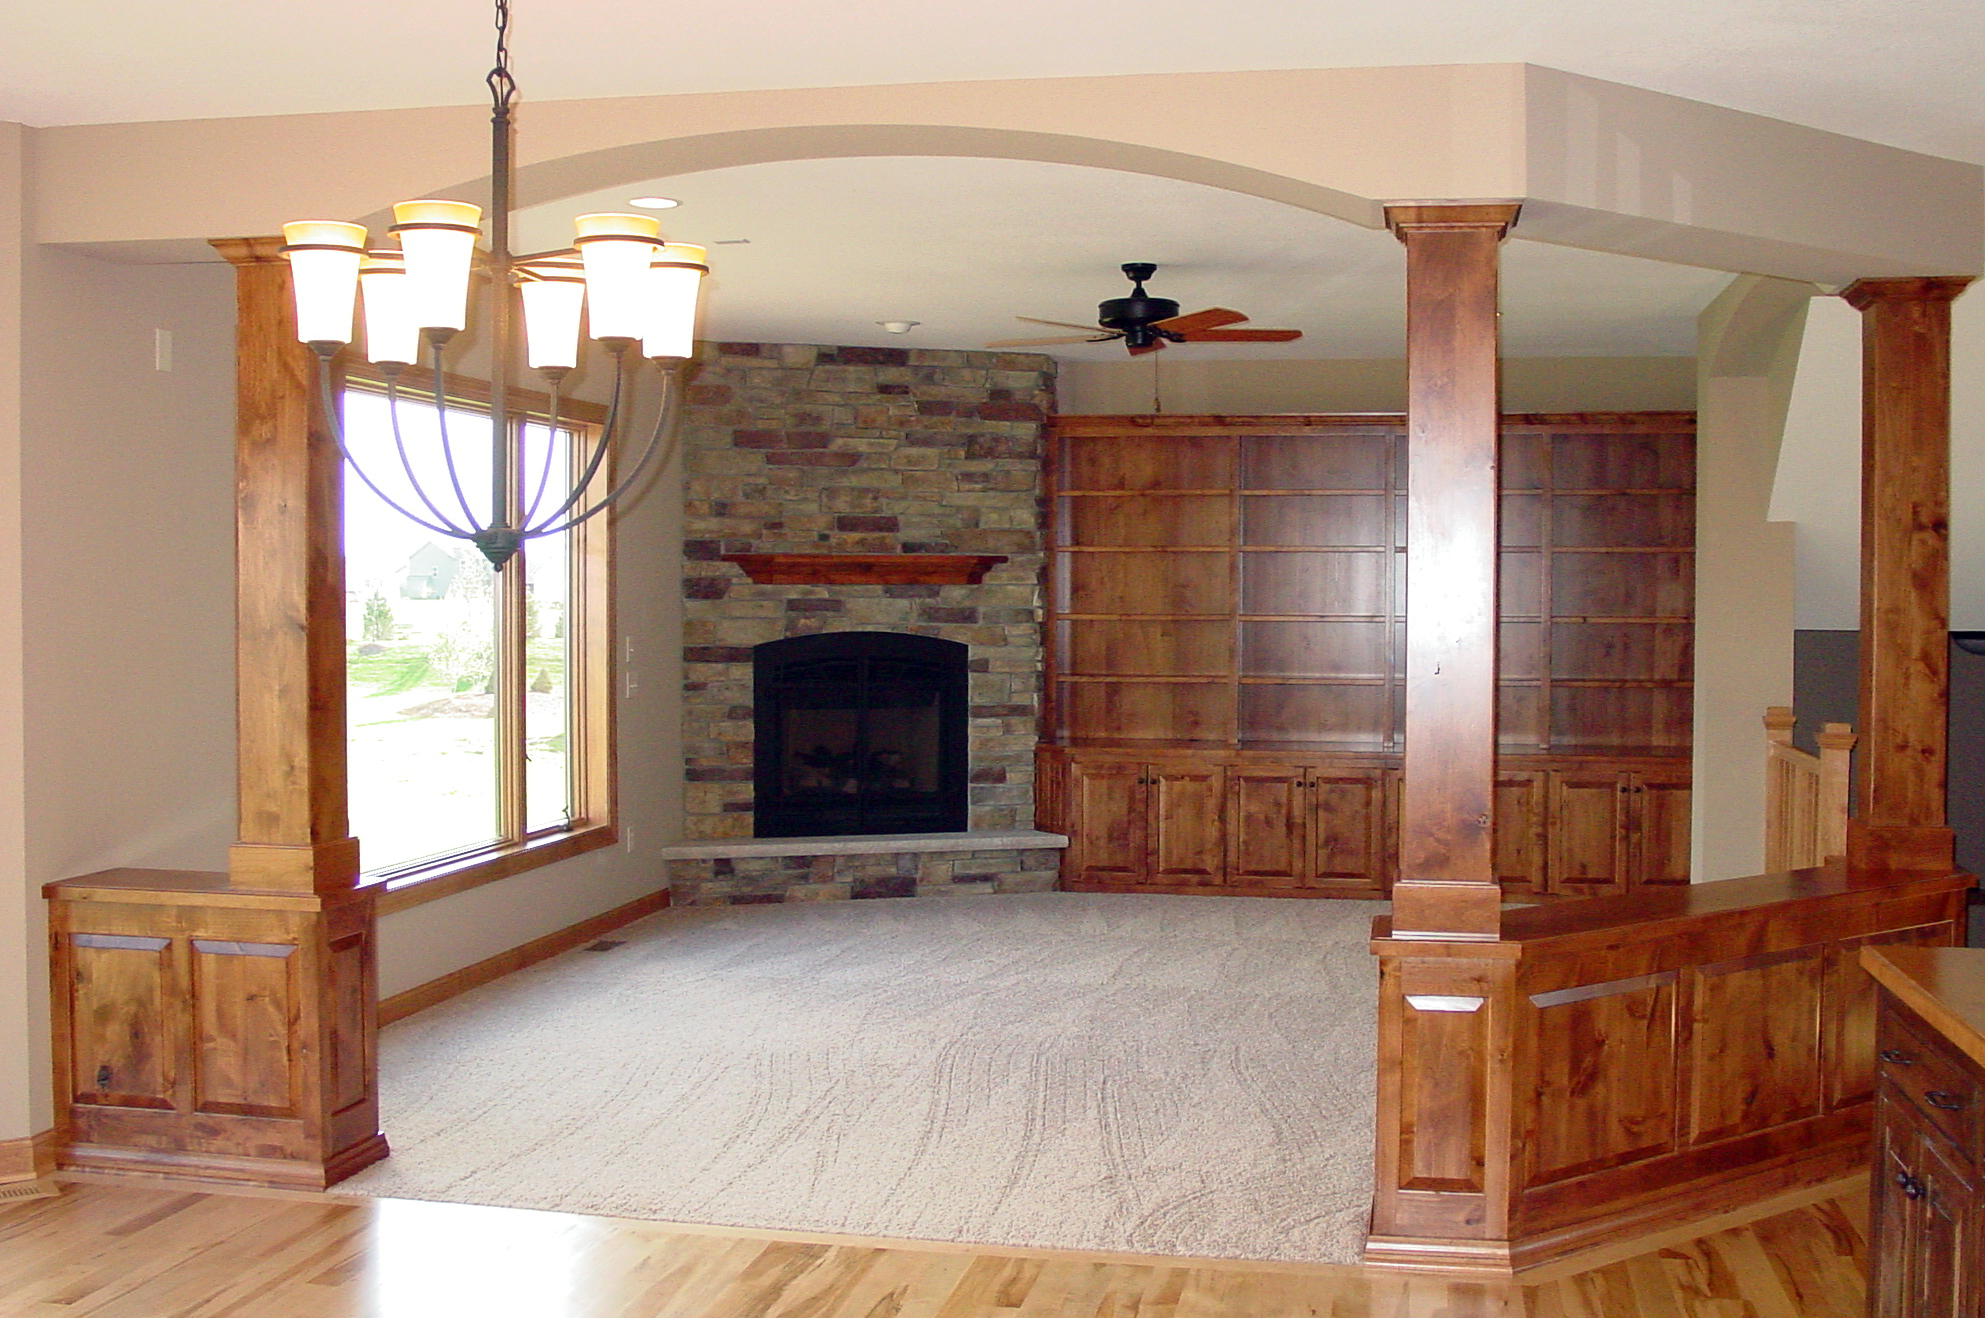 Living room with wood built-ins and stone fireplace